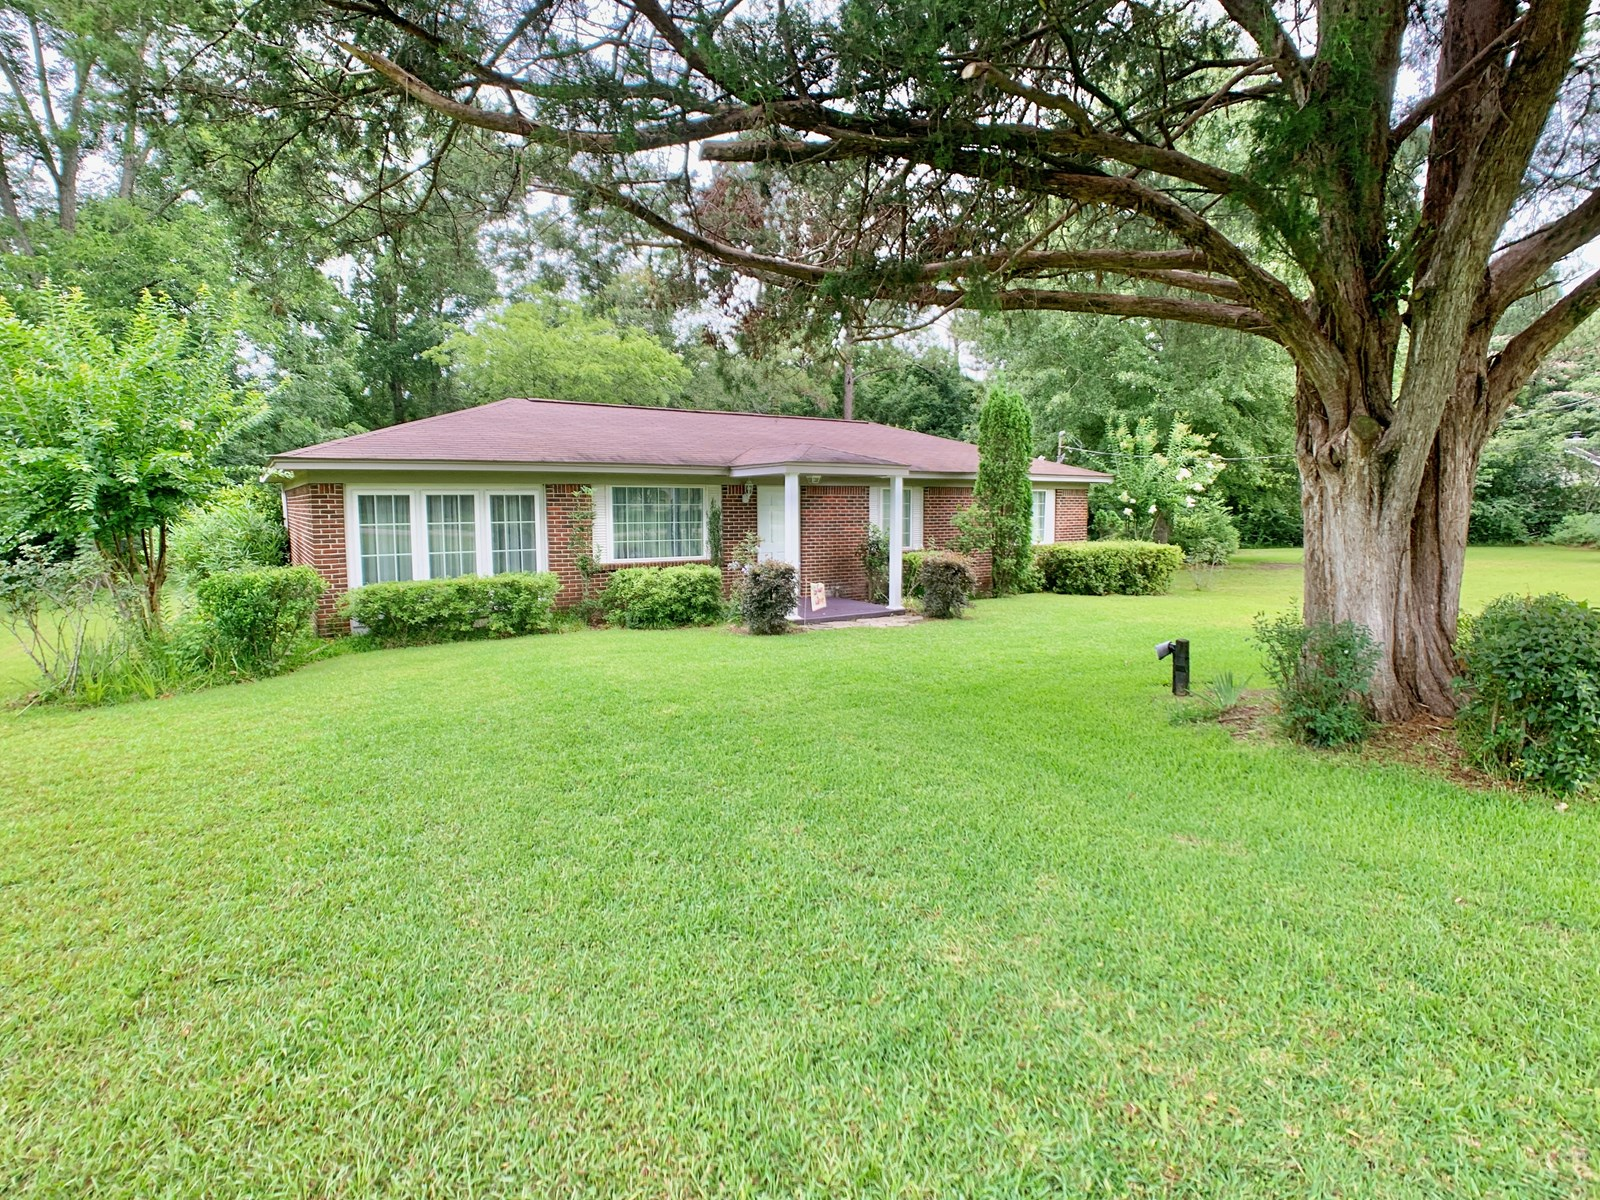 Brick Home on 1 acre Slocomb Alabama Home for Sale -